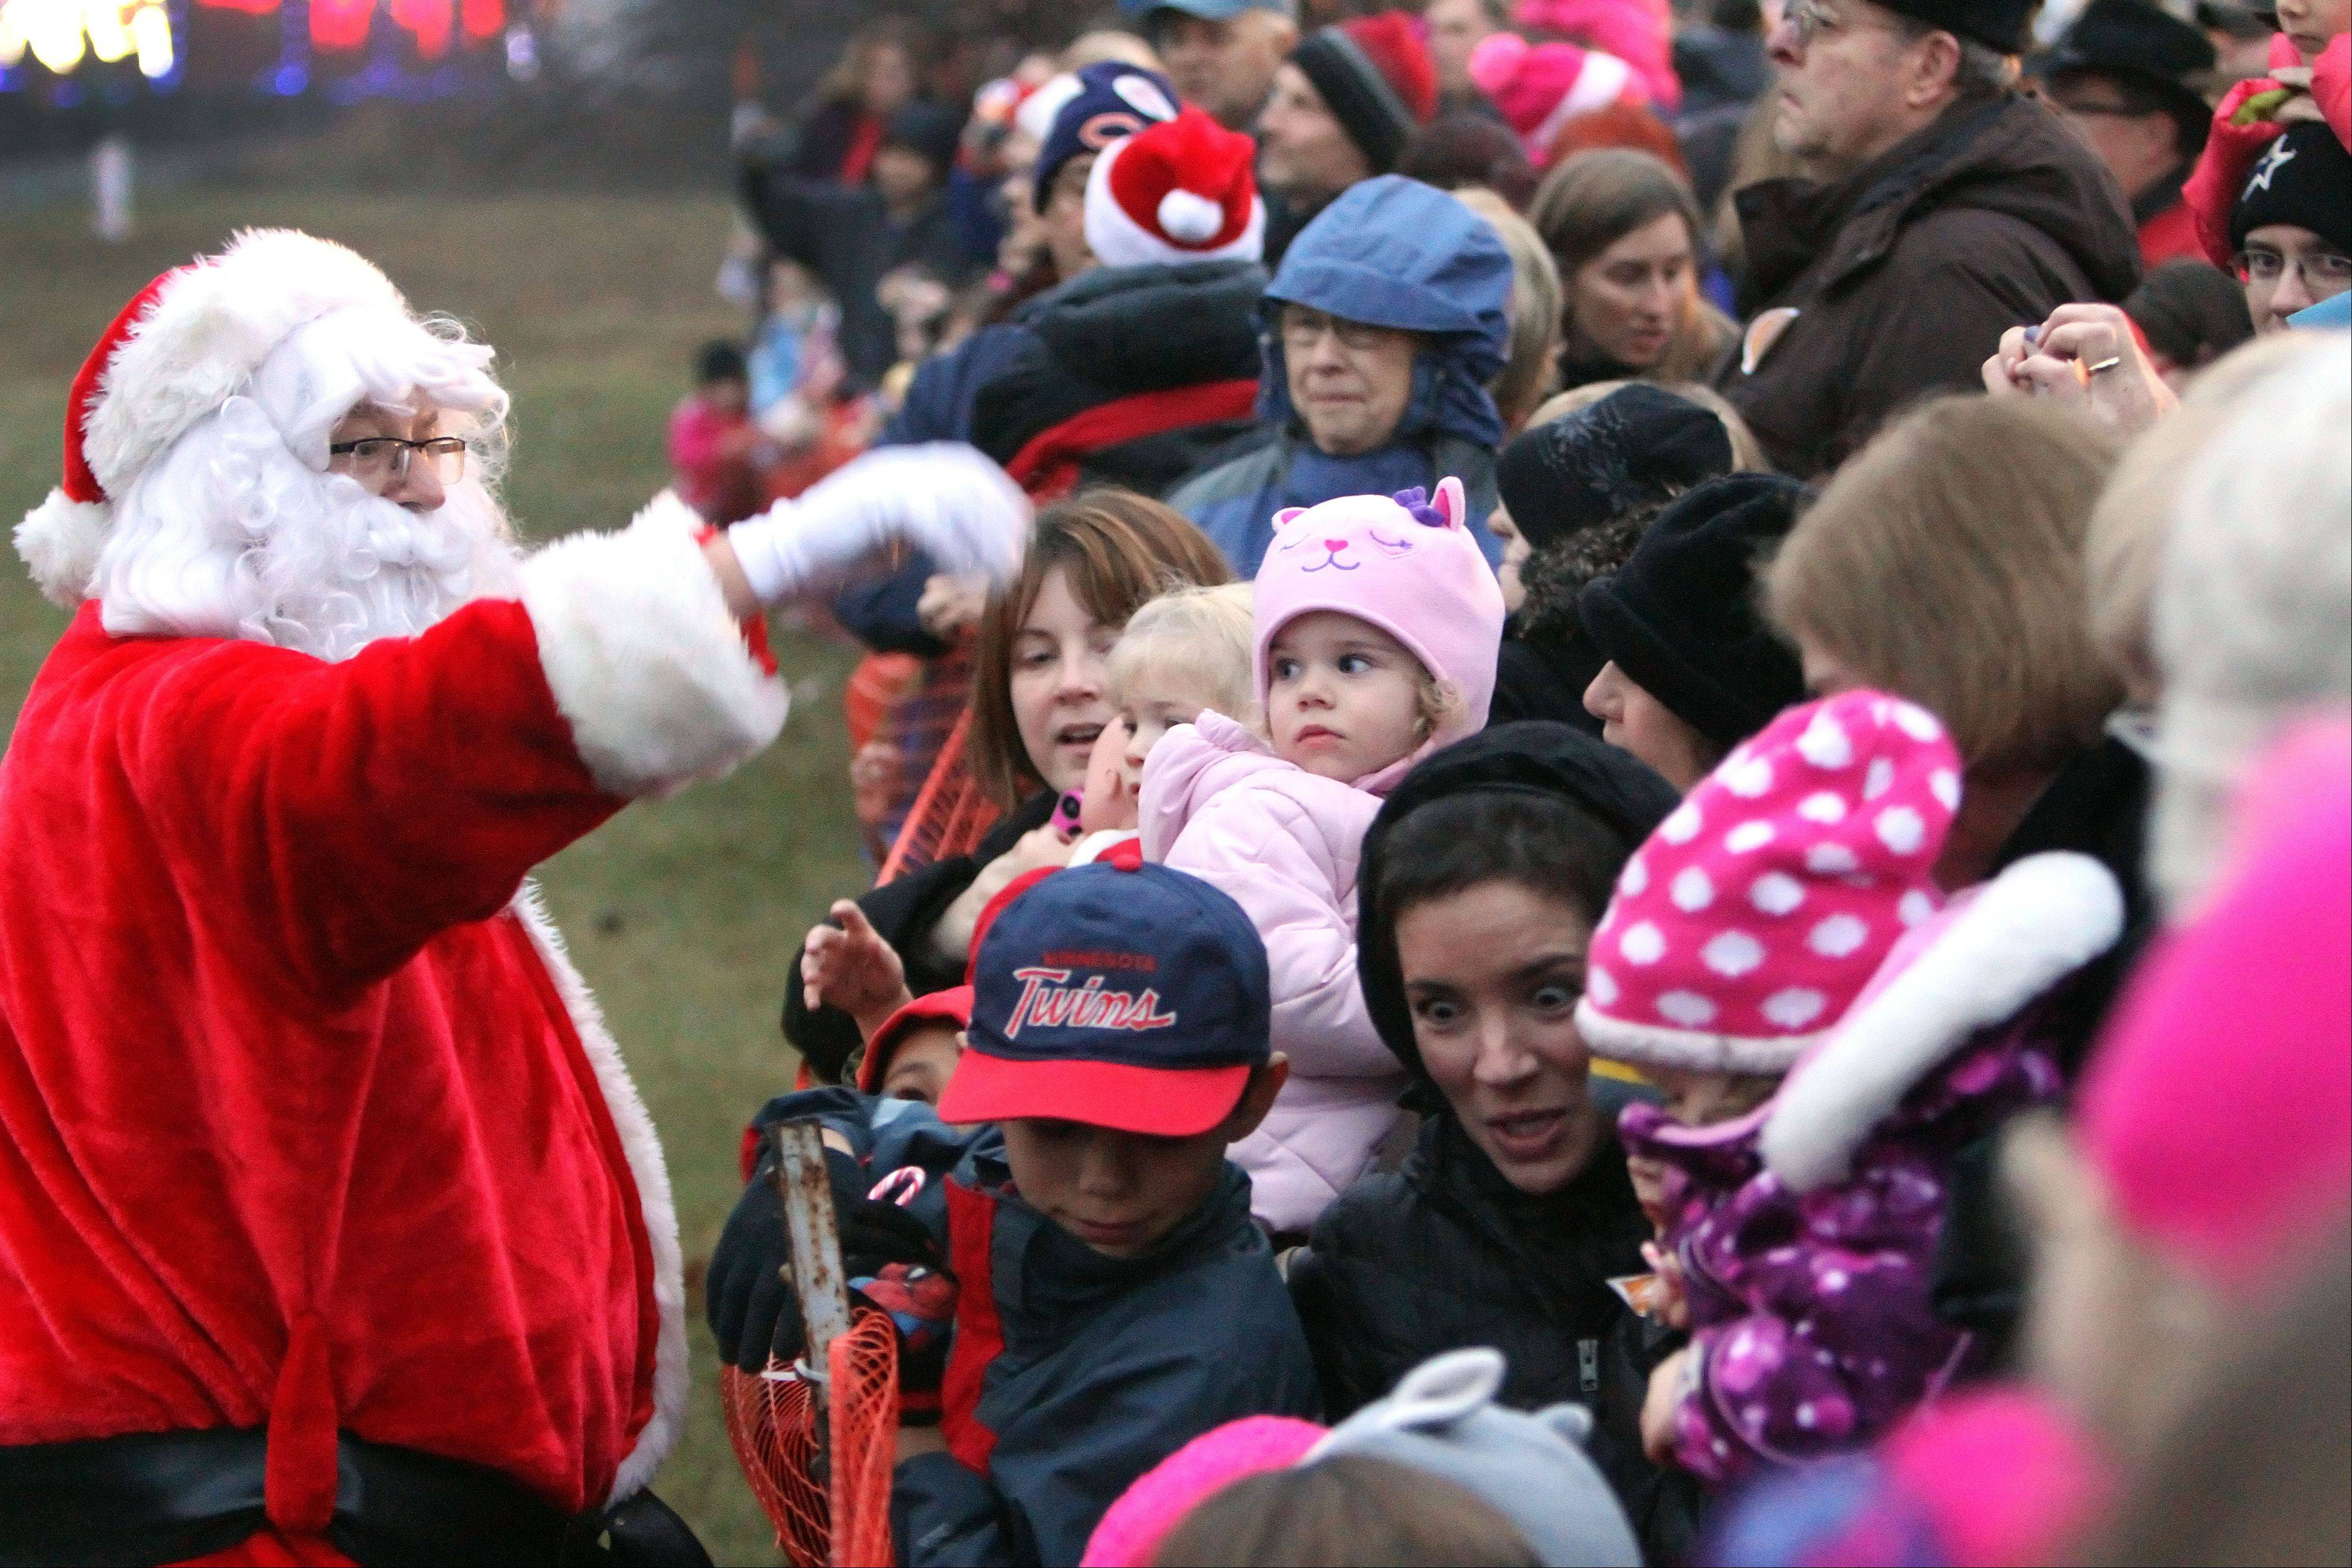 Holiday Train rolls into Gurnee